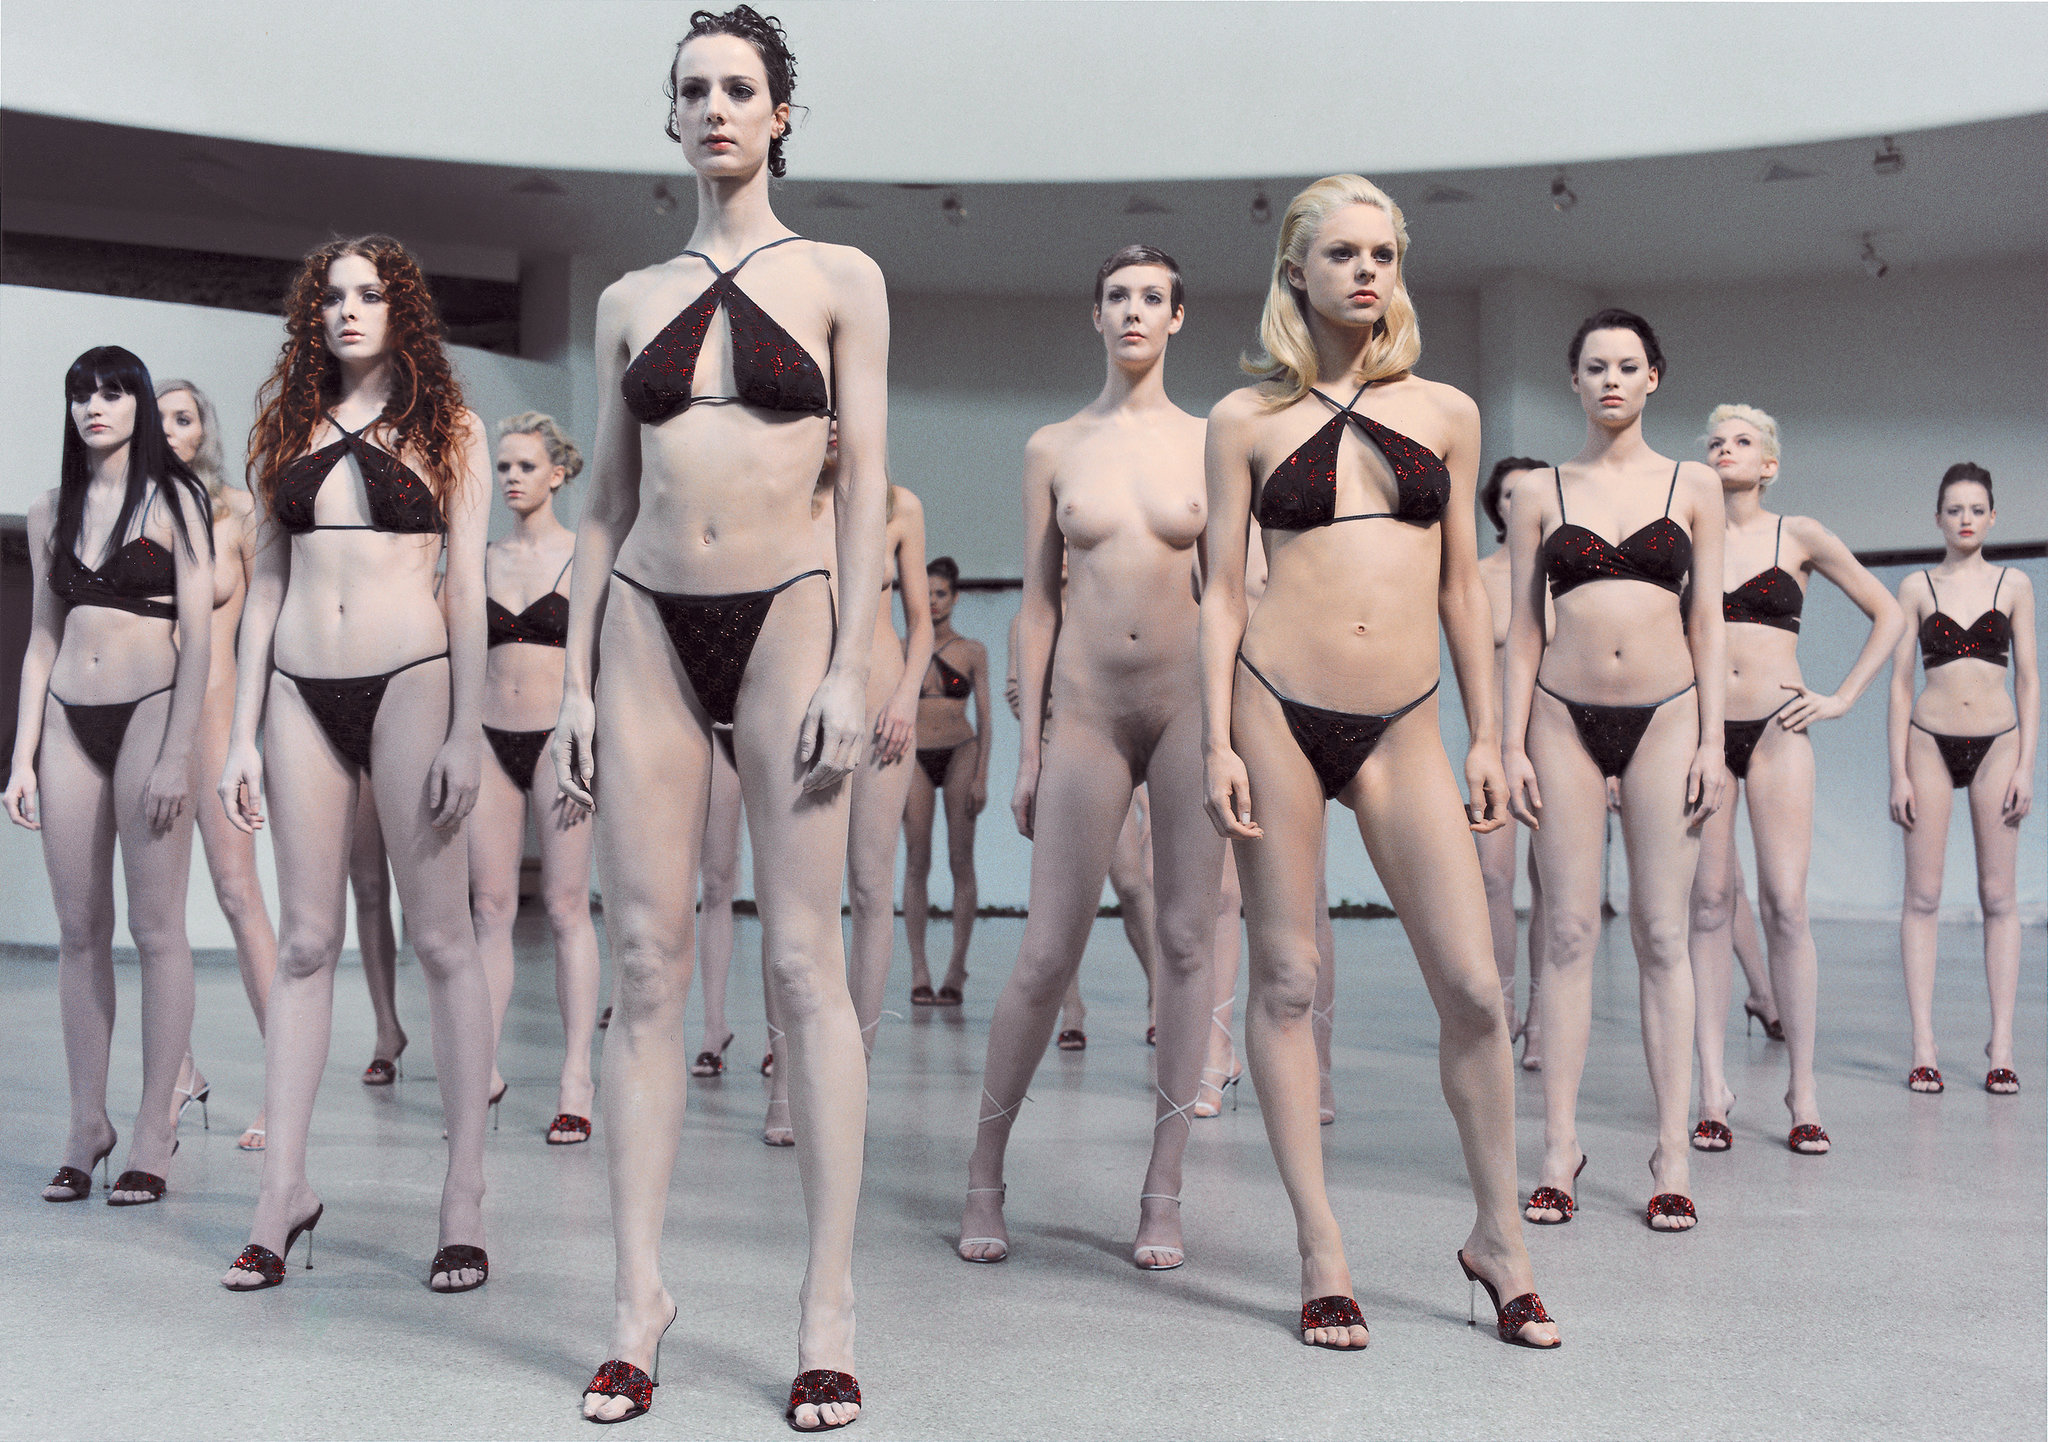 A WAR ON THE SELF: DECONSTRUCTION BODY IMAGE